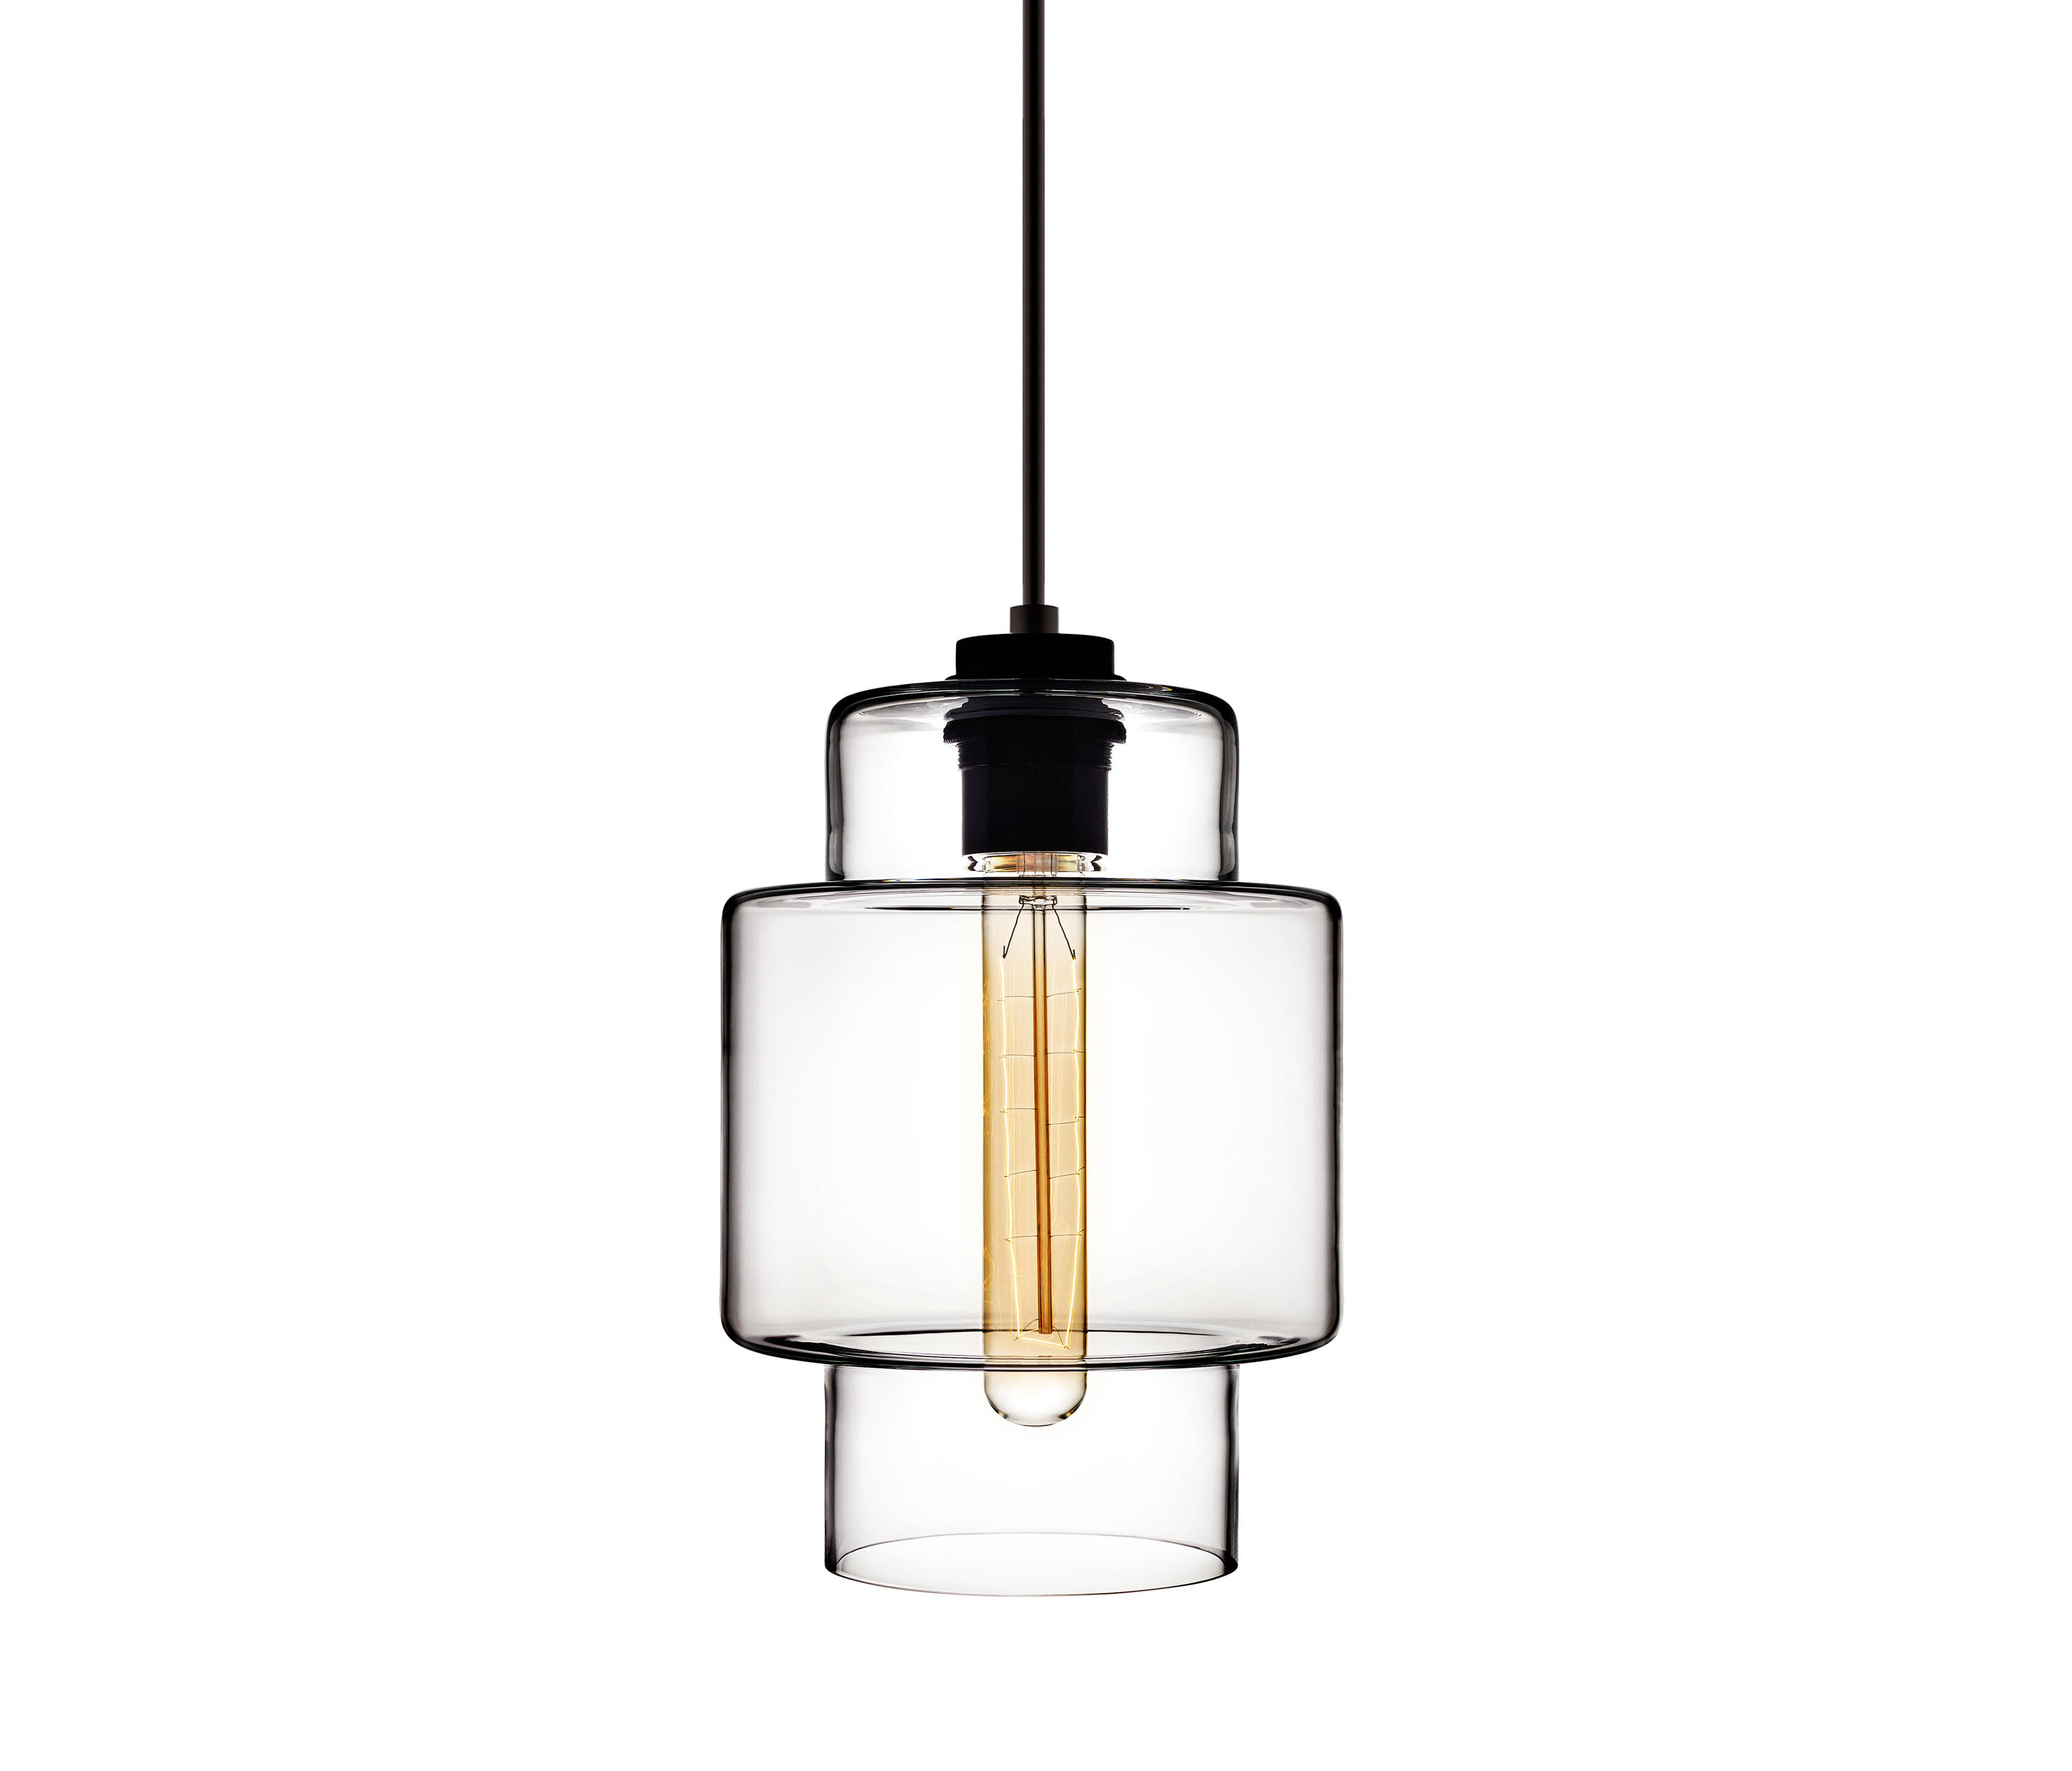 Axia modern pendant light general lighting from niche architonic axia modern pendant light by niche general lighting mozeypictures Images